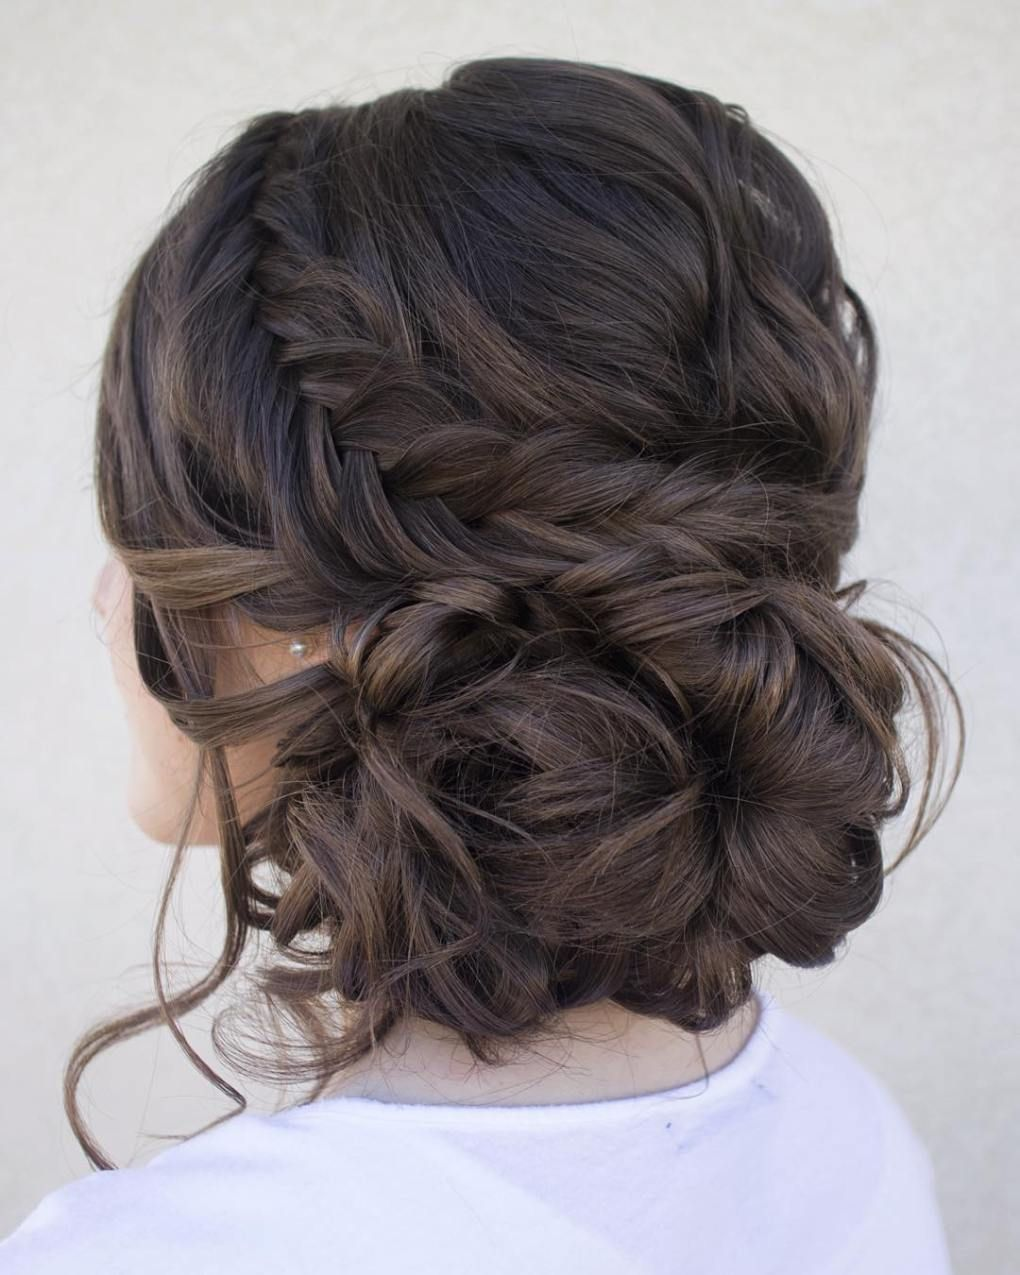 40 Most Delightful Prom Updos For Long Hair In 2020 Hair Styles Fall Wedding Hairstyles Pretty Hairstyles